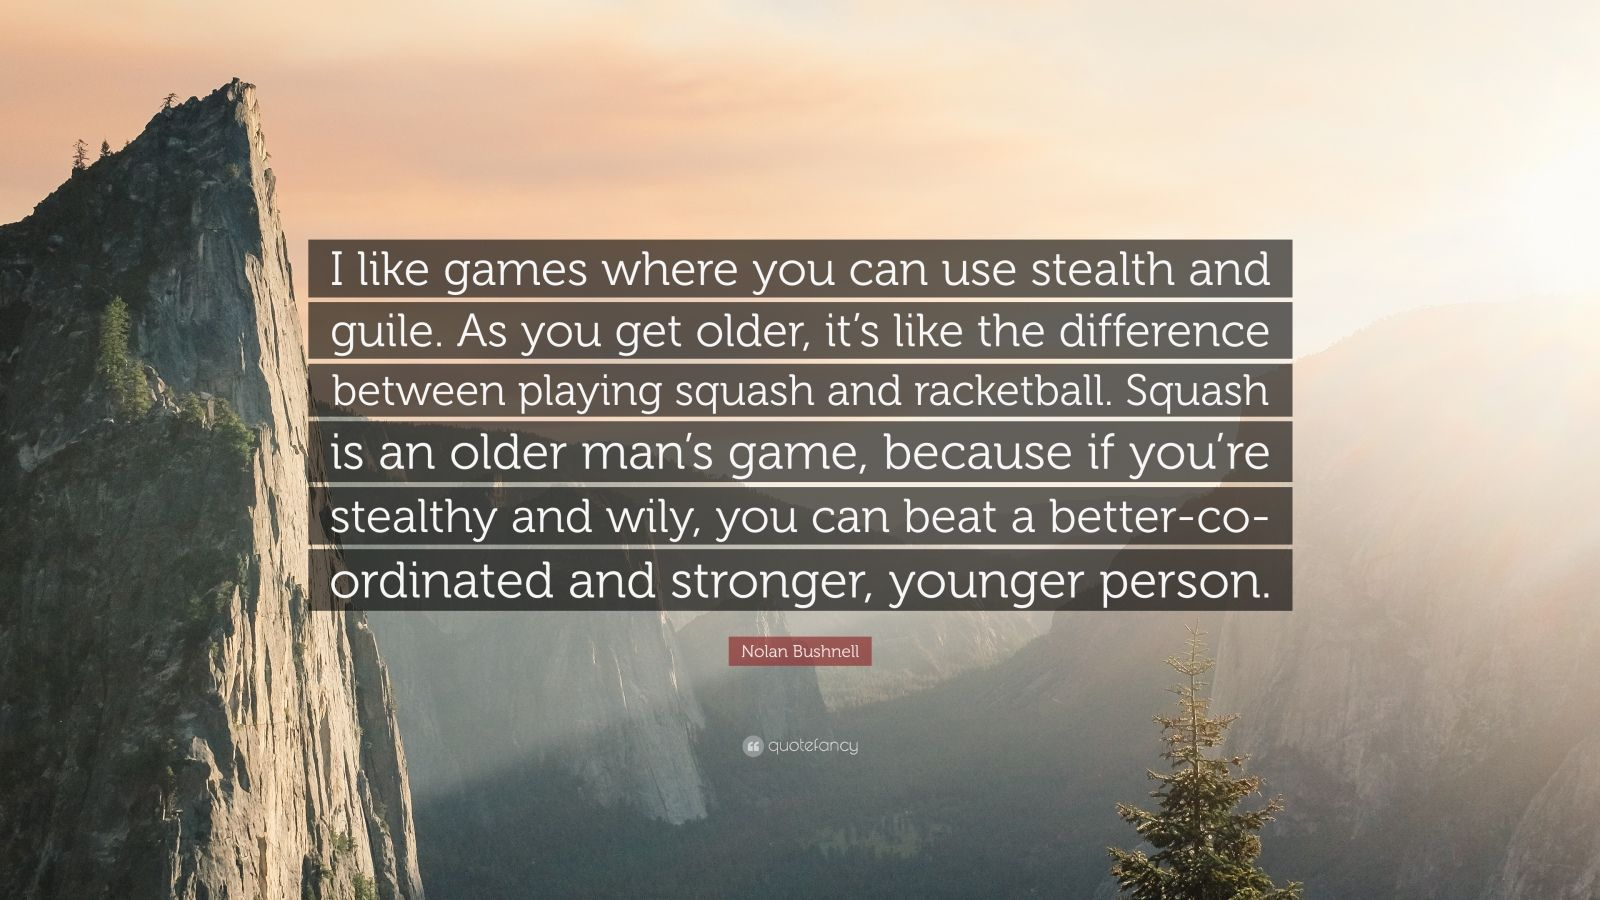 """Nolan Bushnell Quote: """"I like games where you can use stealth and guile. As you get older, it's like the difference between playing squash and racketball. Squash is an older man's game, because if you're stealthy and wily, you can beat a better-co-ordinated and stronger, younger person."""""""